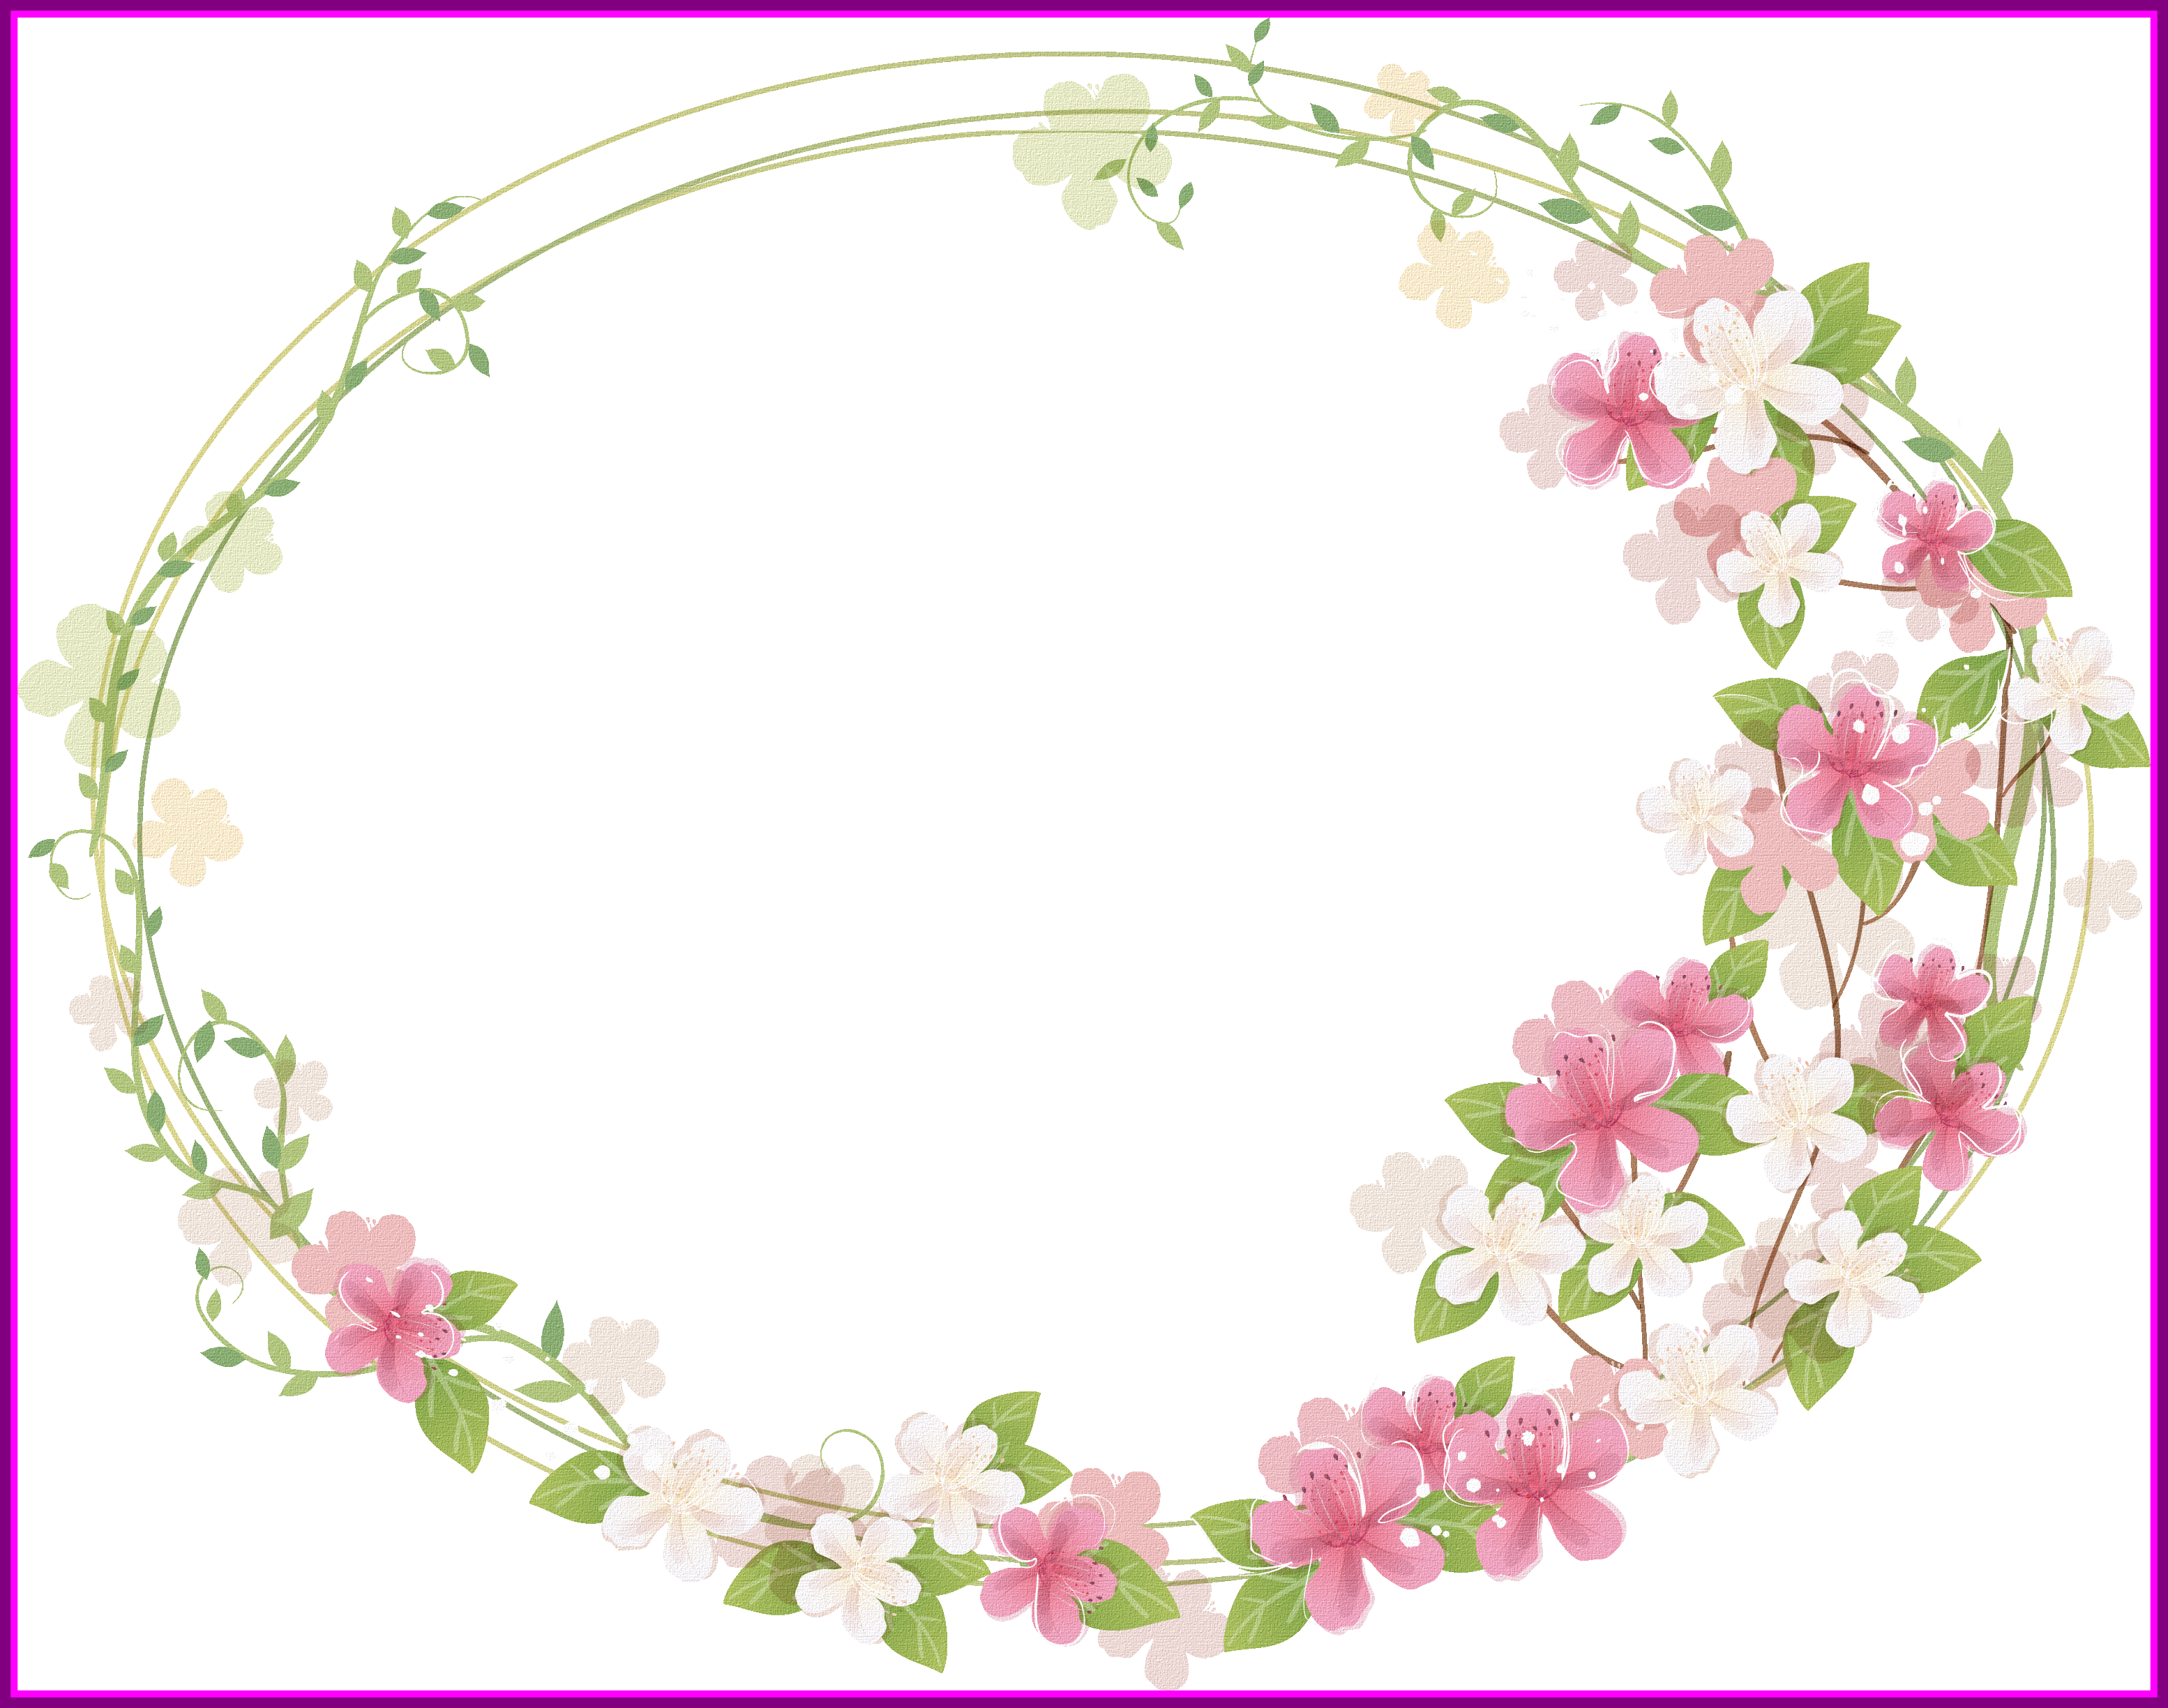 Flower crown png transparent. Inspiring a orig circle